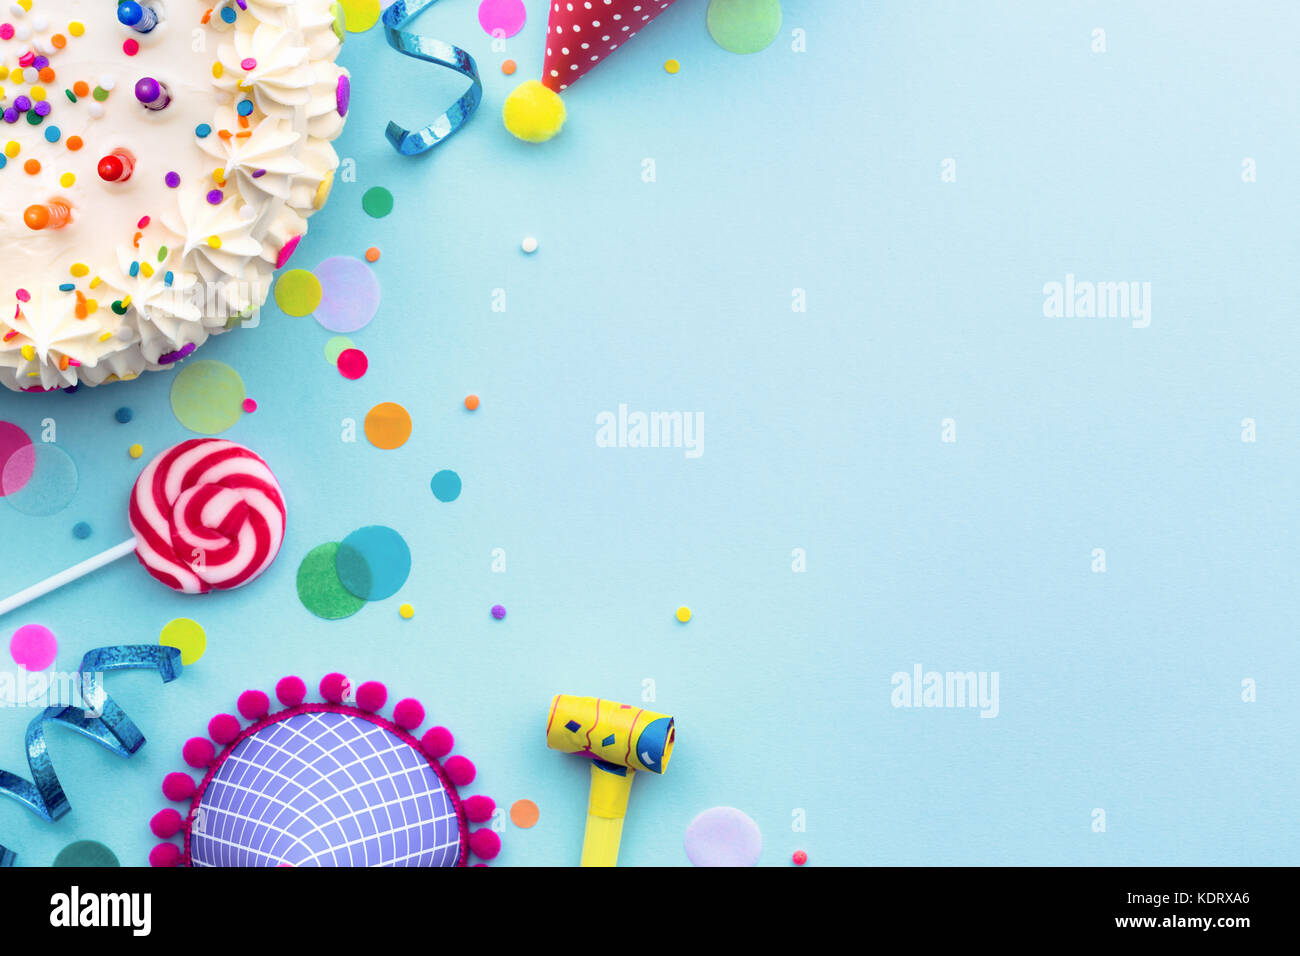 Colorful birthday party background with birthday cake and party hats - Stock Image